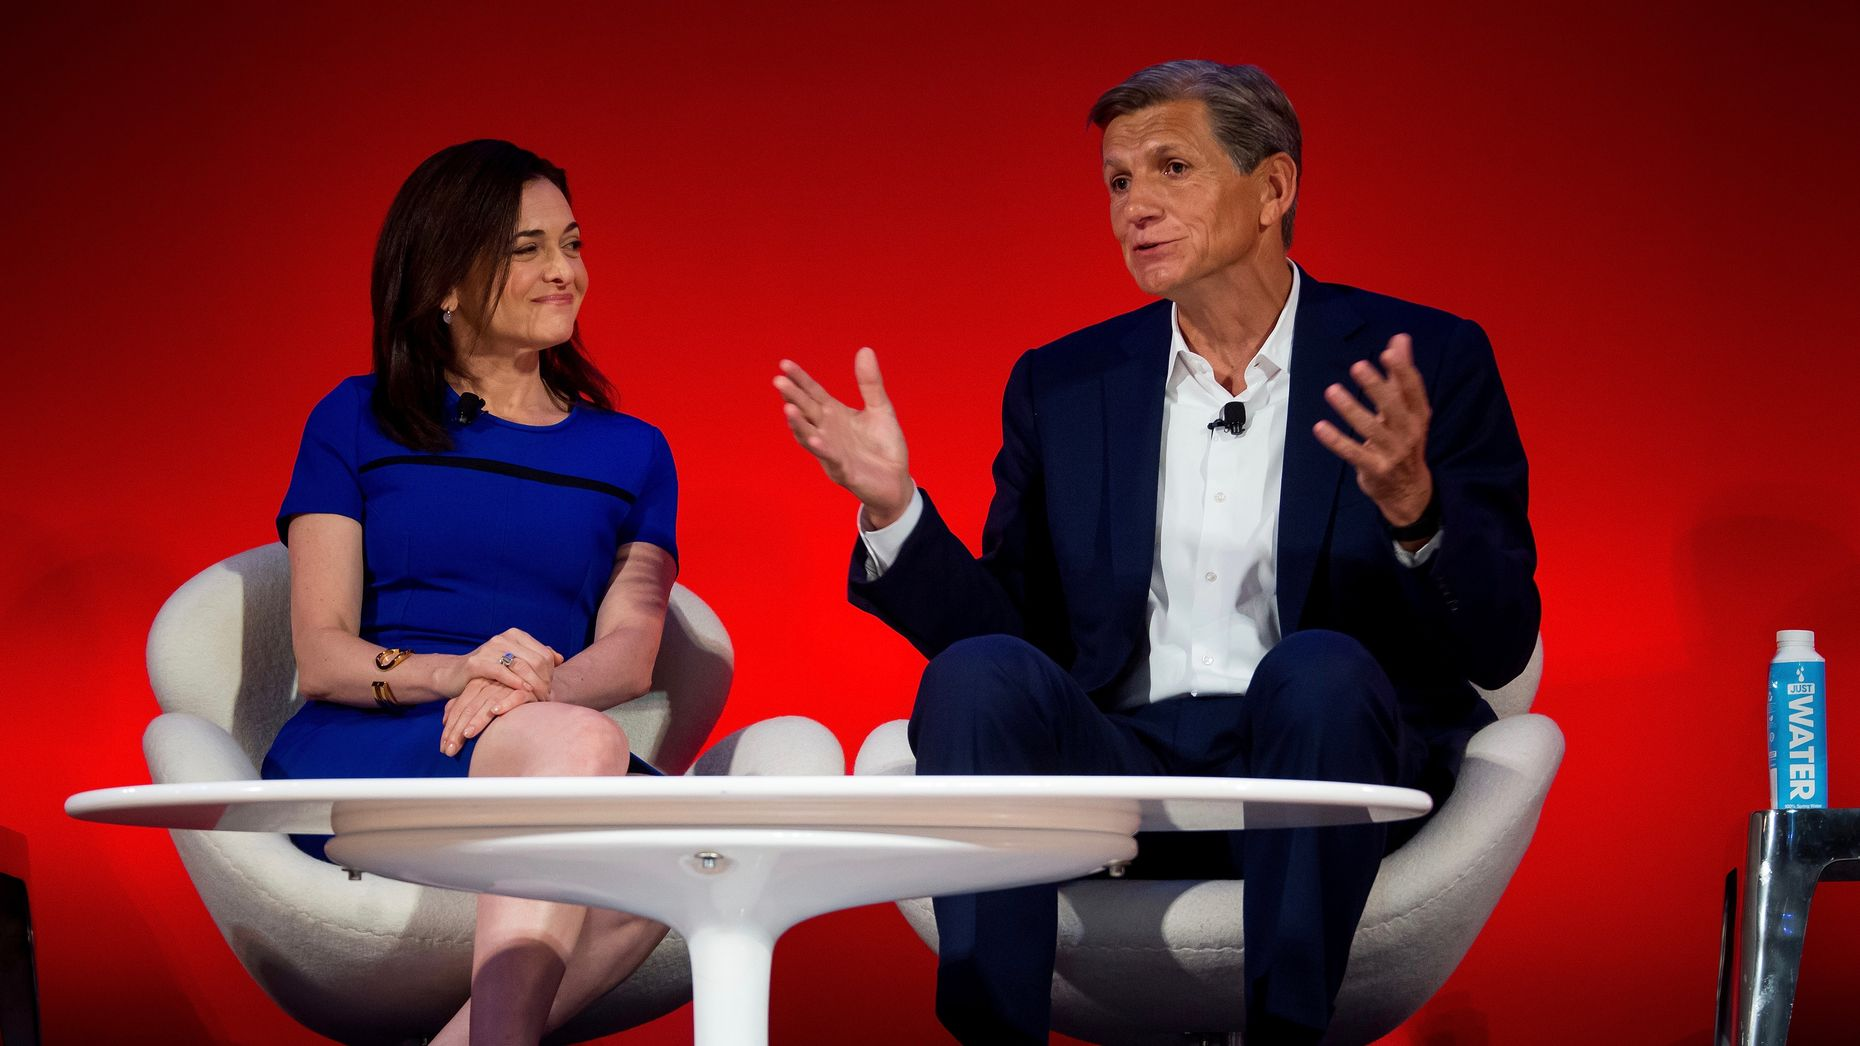 Facebook's Sheryl Sandberg, left, and Marc Pritchard of Procter & Gamble Co. Photo by Bloomberg.